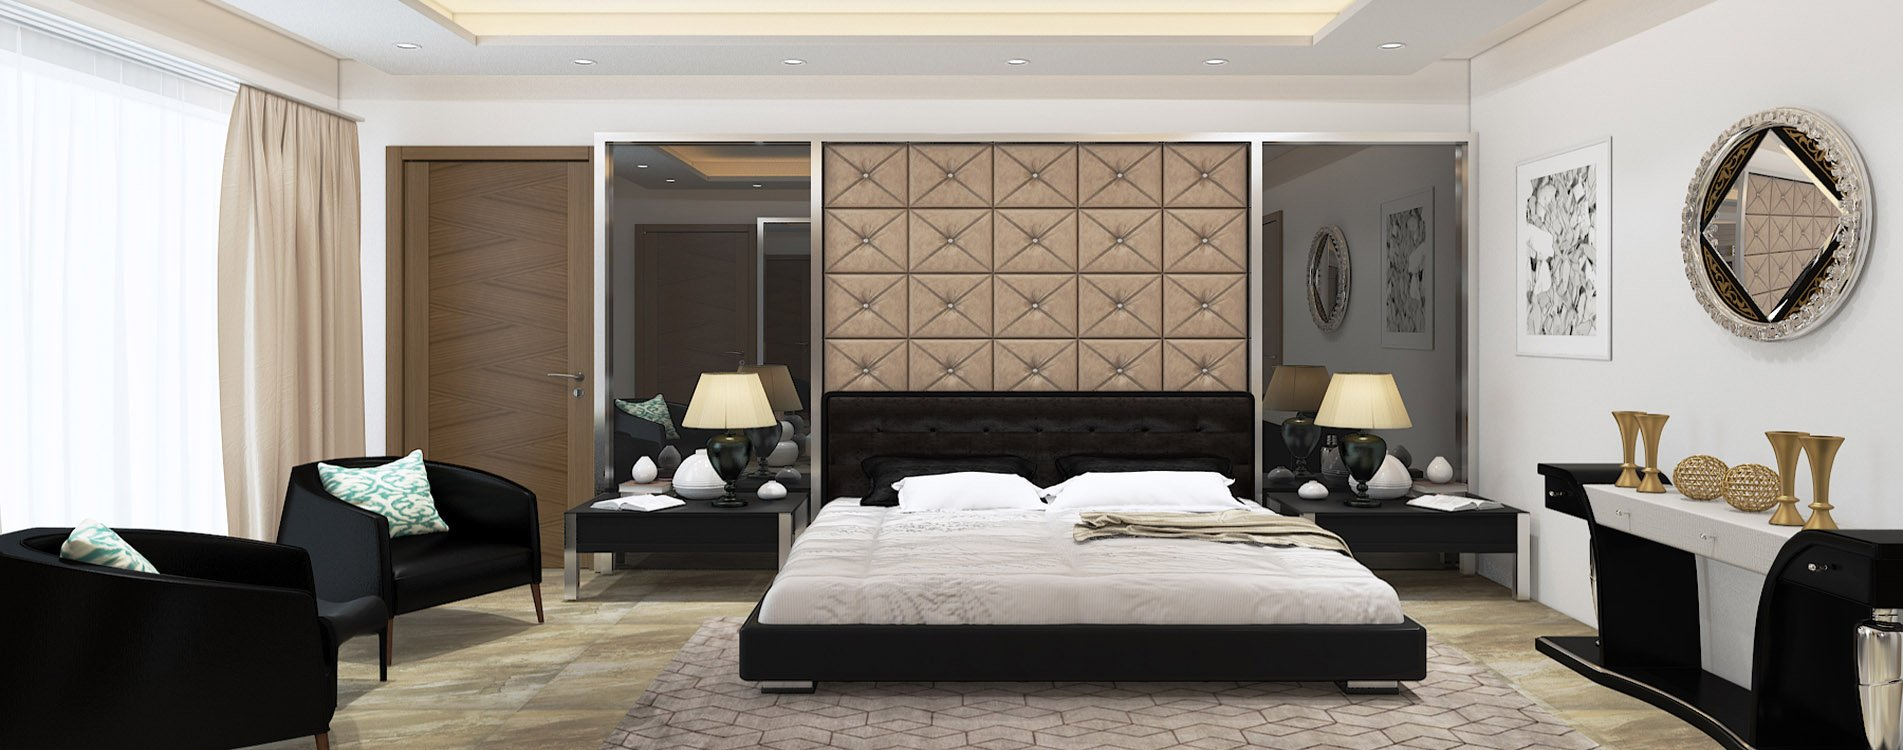 Best Interior Designers Decorators In Chennai Goodworkinteriors